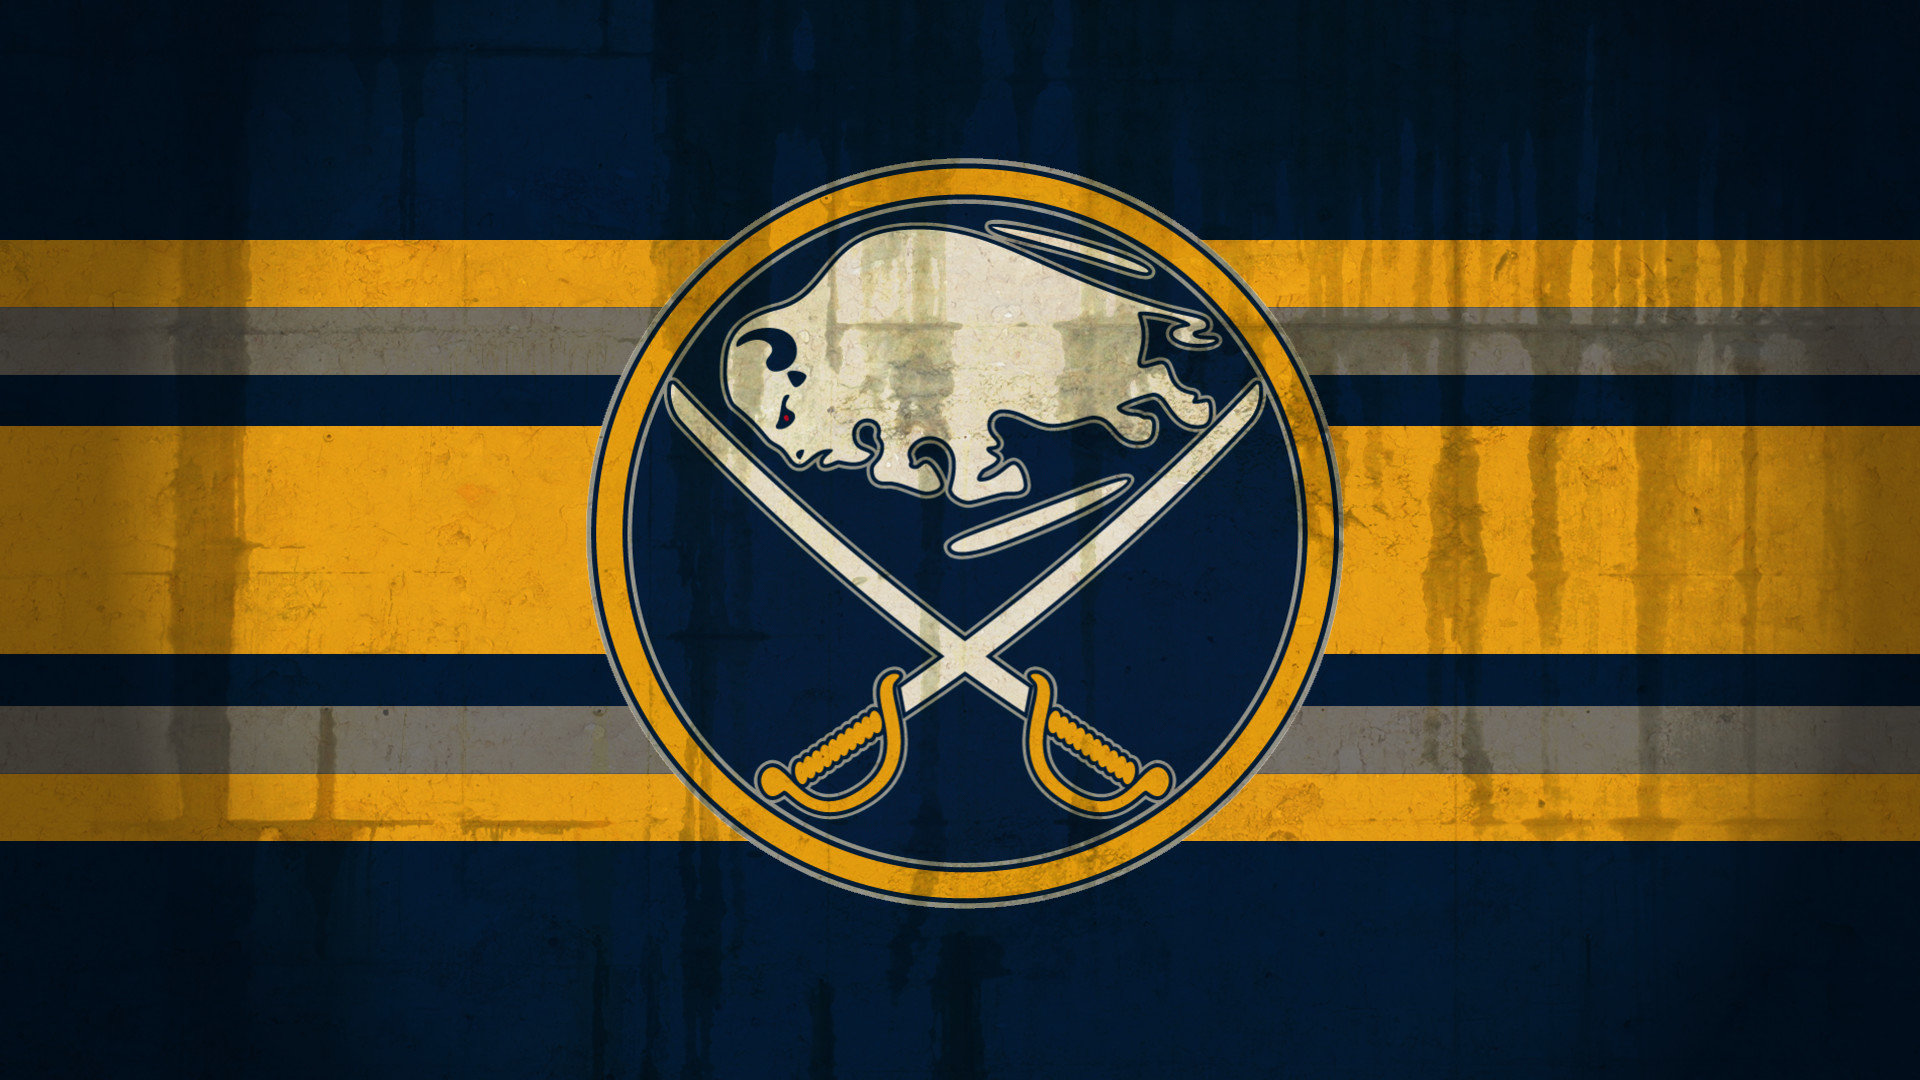 Awesome Buffalo Sabres free wallpaper ID:205940 for full hd computer